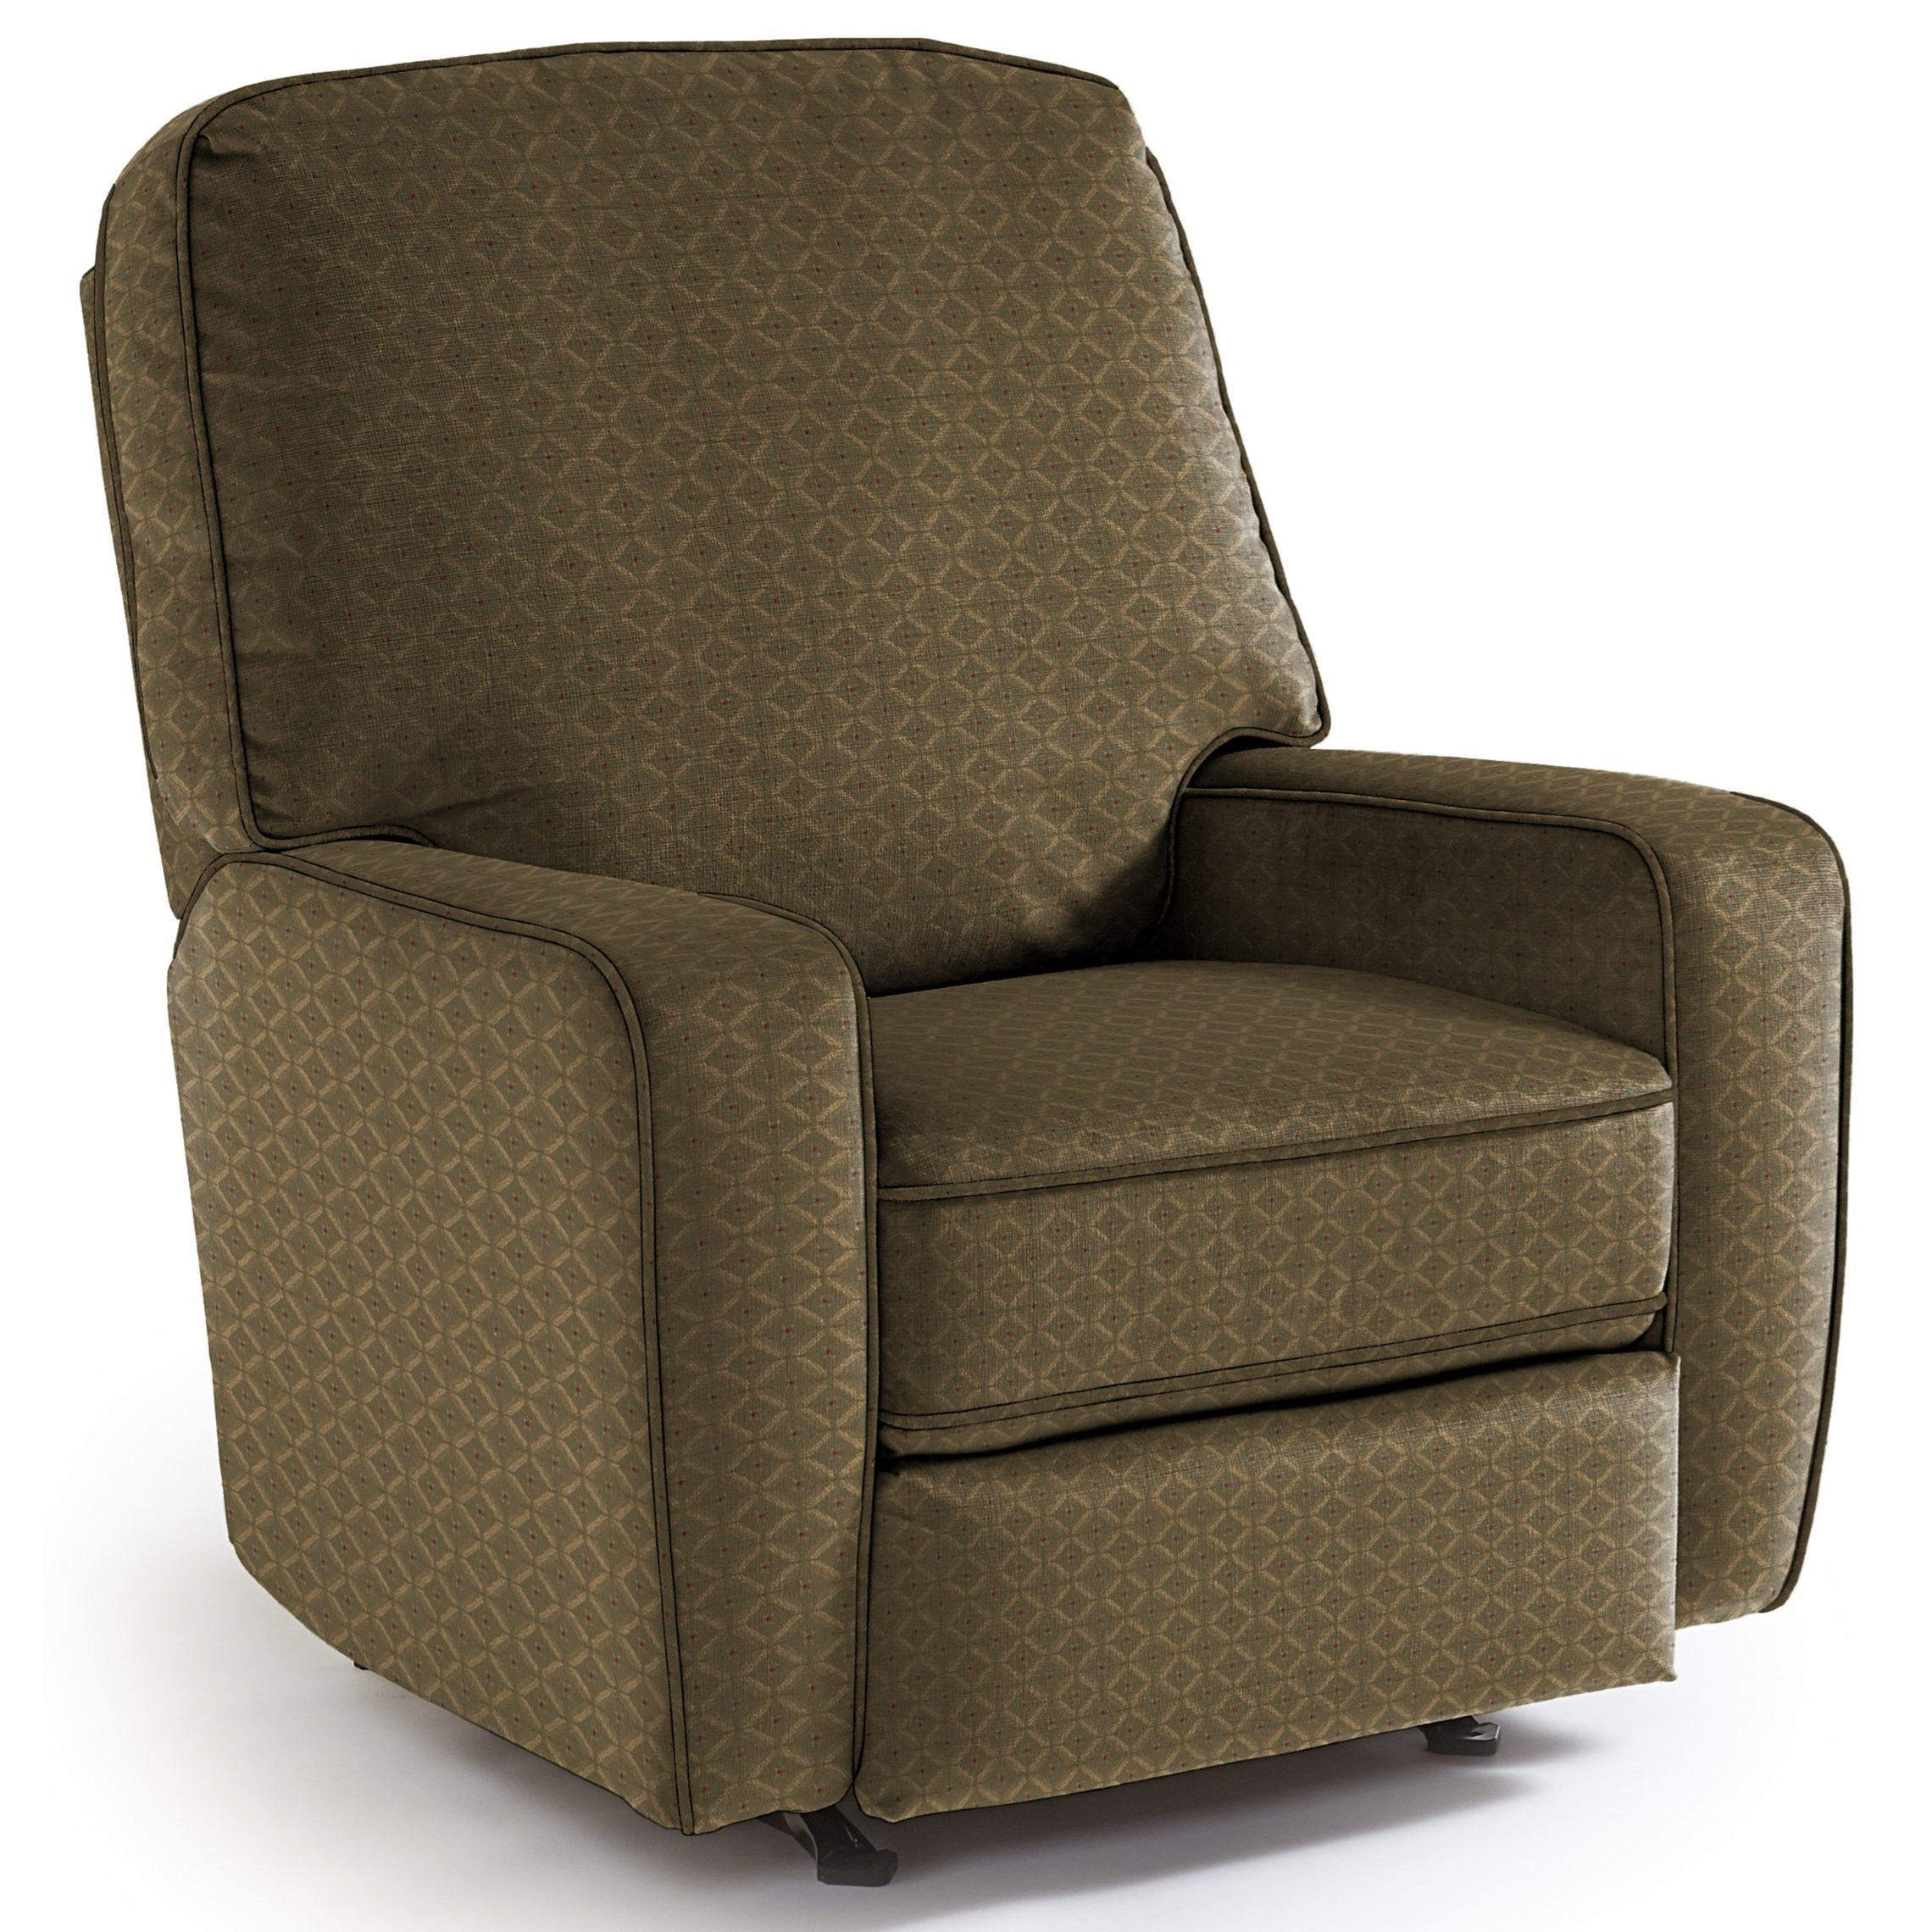 Best Home Furnishings Recliners - Medium Bilana Swivel Glider Reclining Chair  sc 1 st  Wayside Furniture & Best Home Furnishings Recliners - Medium Bilana Swivel Glider ... islam-shia.org